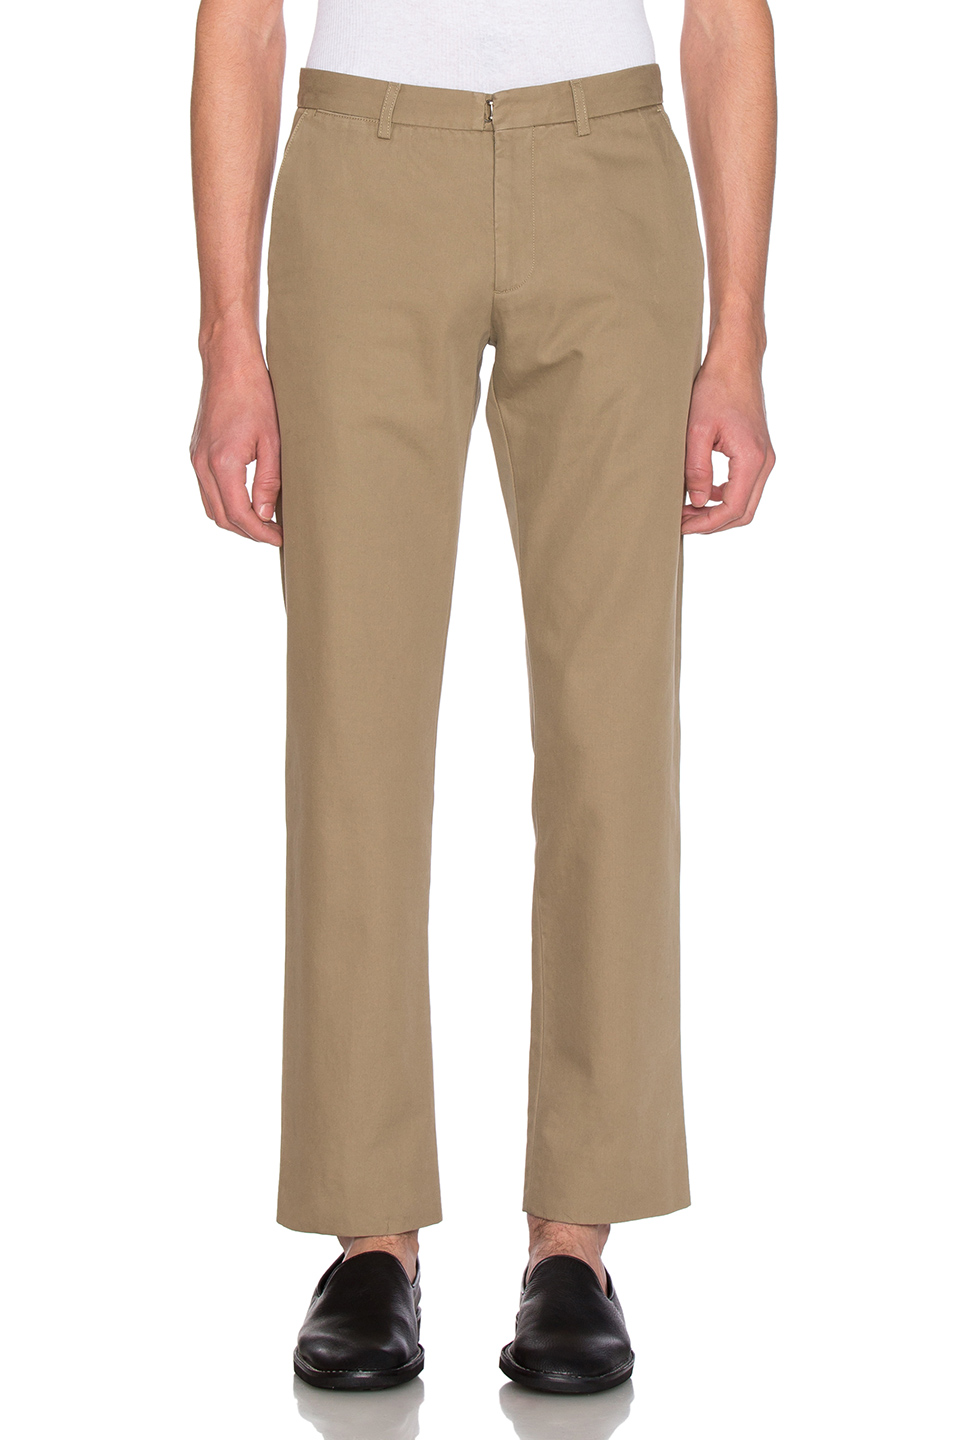 Maison Margiela Cotton Gabardine Slim Chino in Neutrals